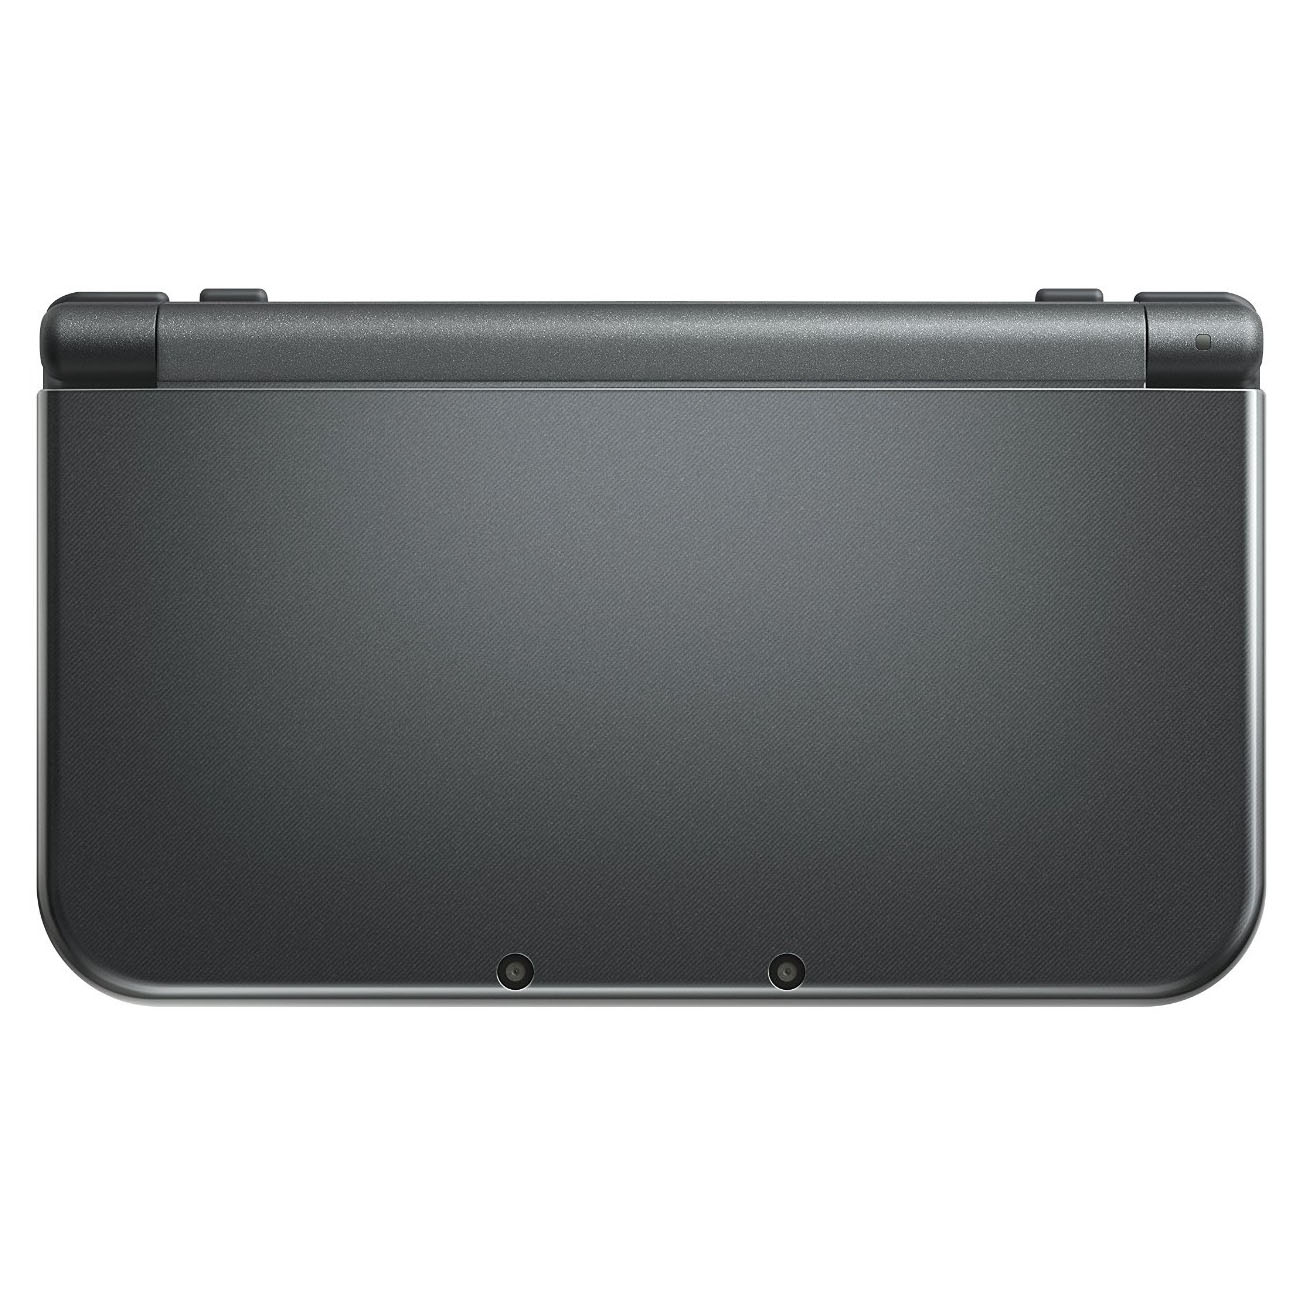 Nintendo New 3DS XL Handheld Video Game Console System - Black 3